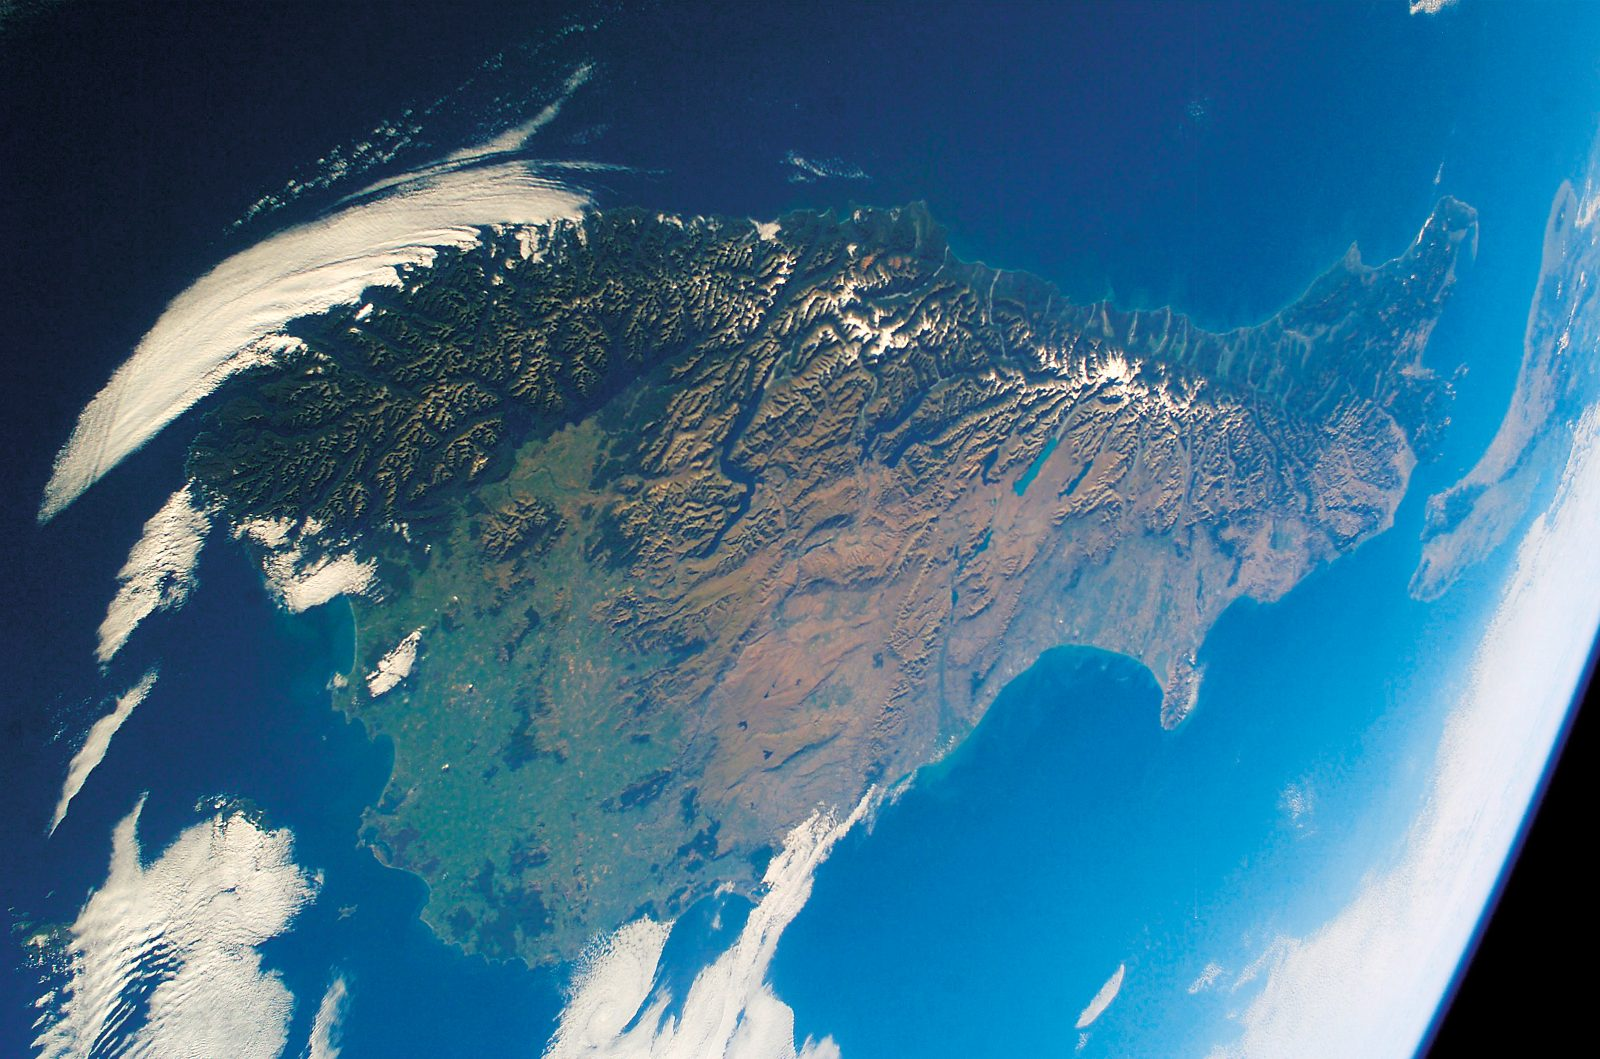 The mountains of the South Island impart some sense of thickness to the land.